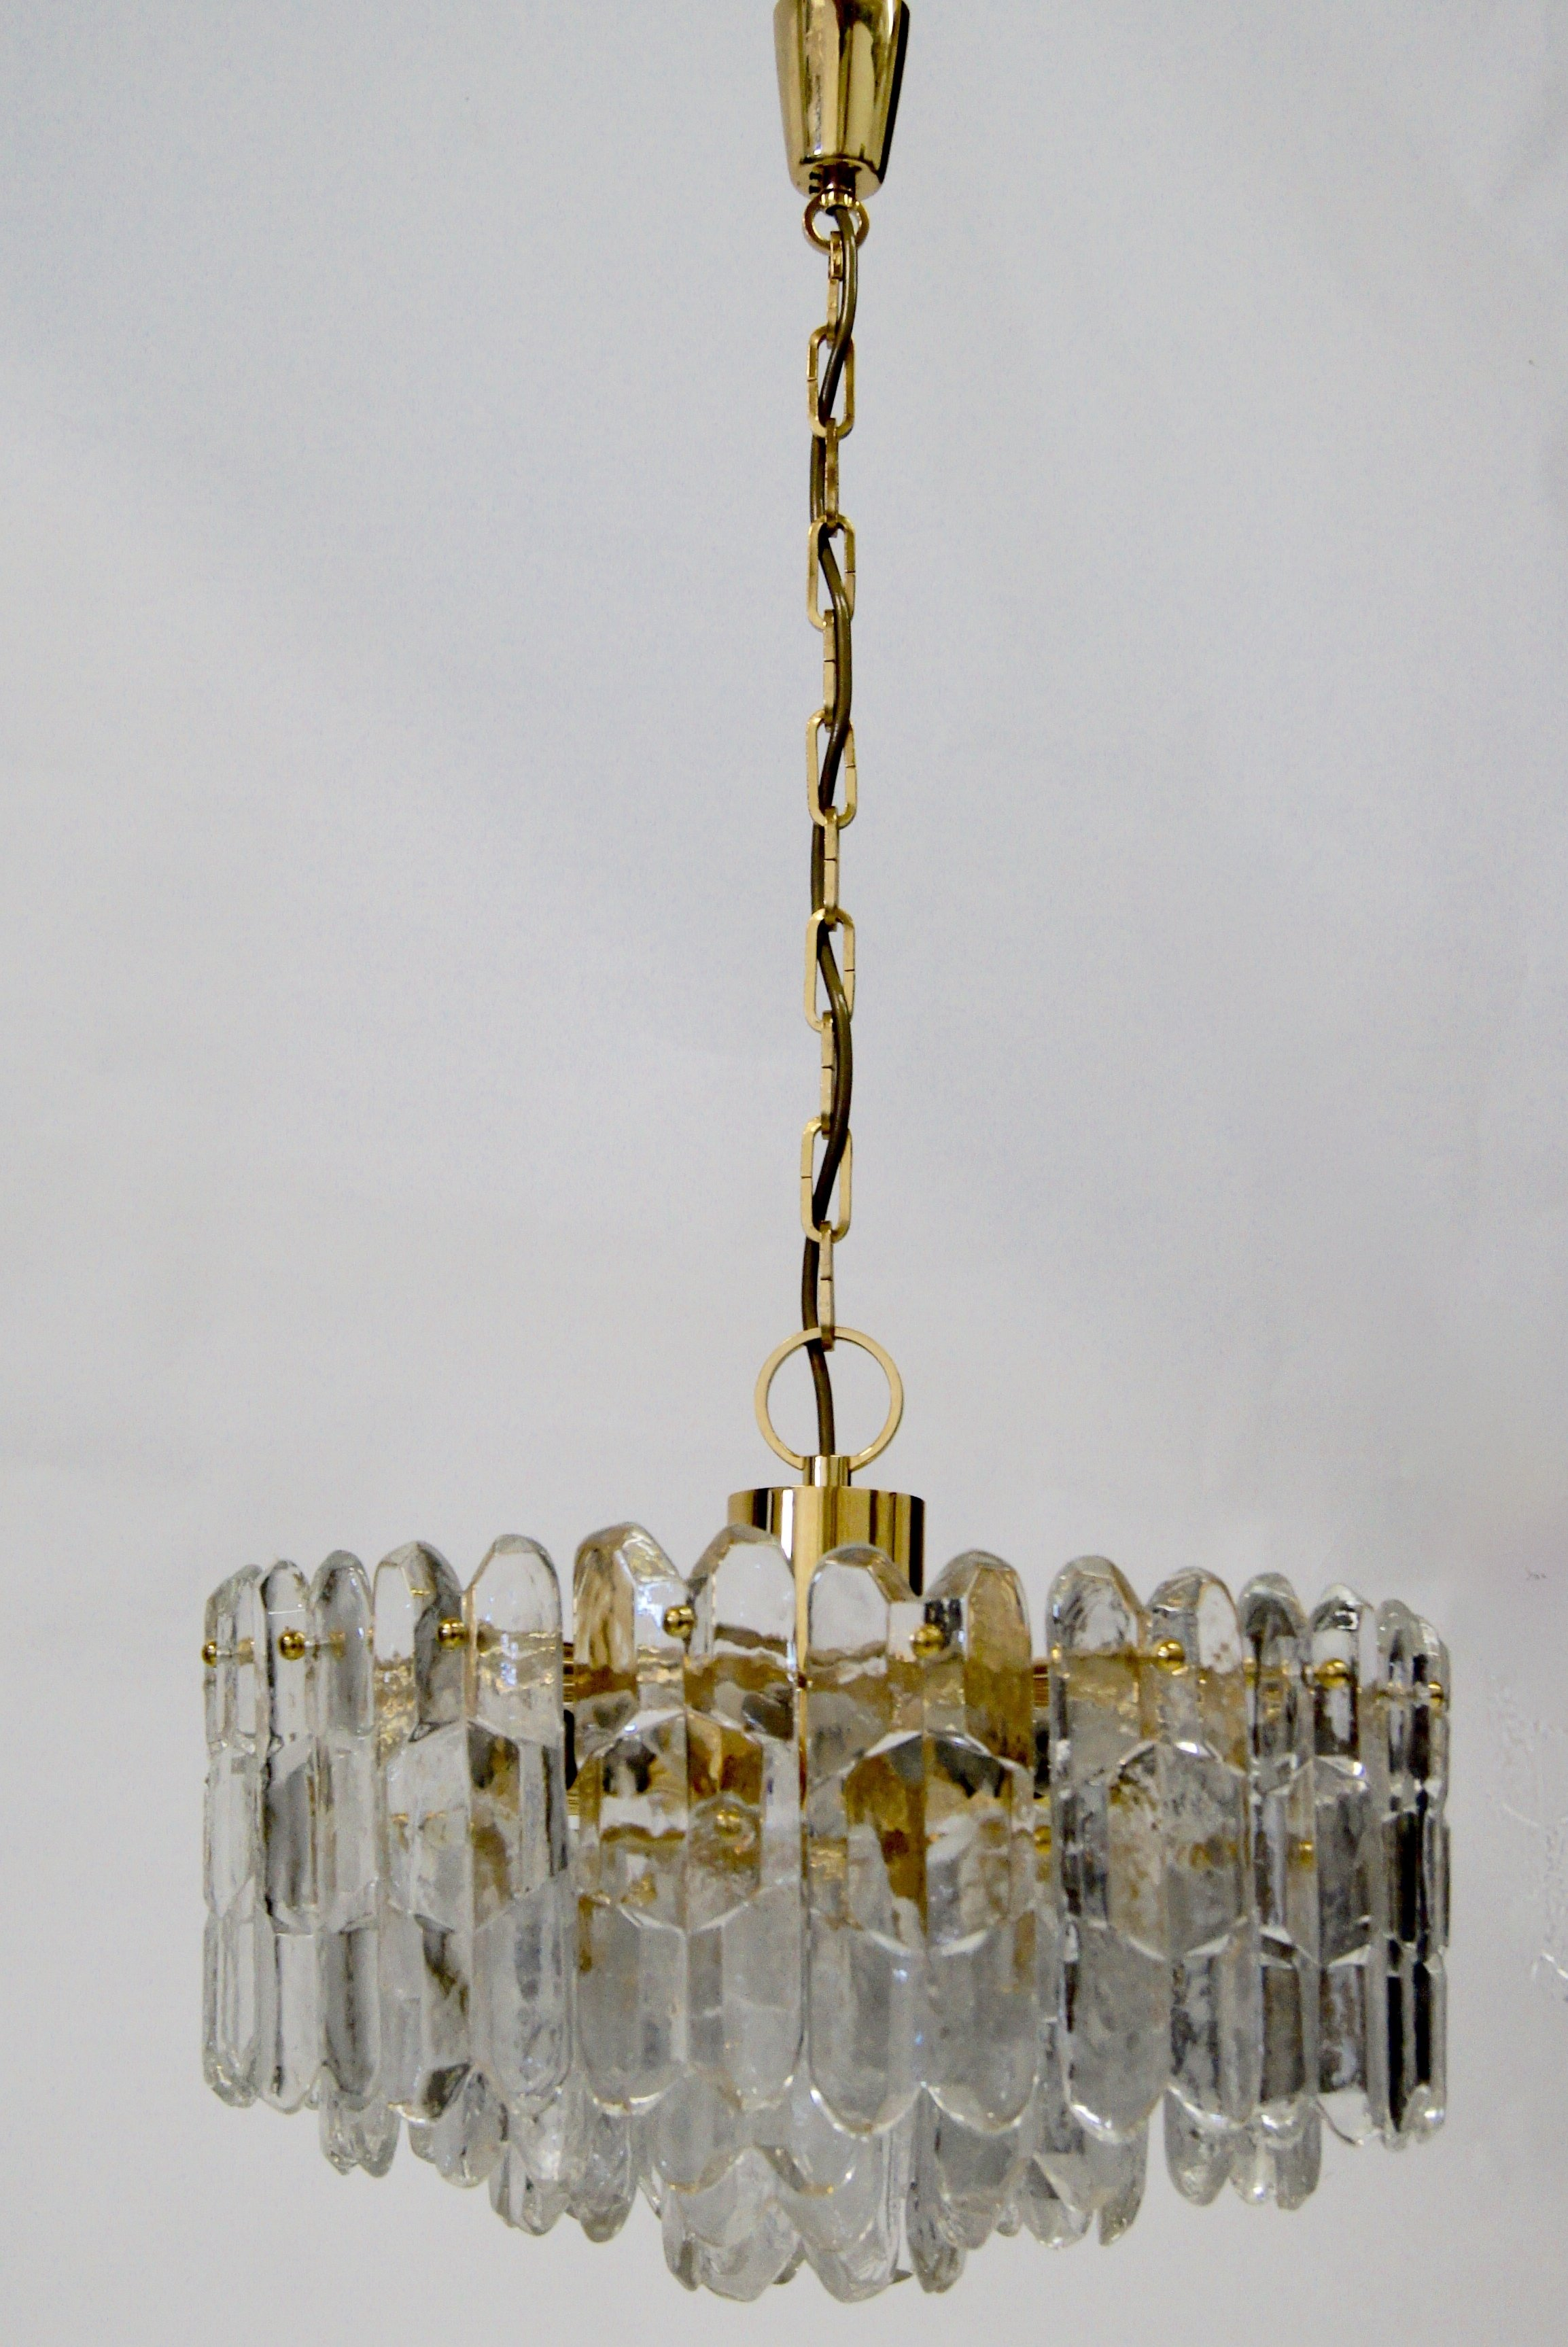 Kalmar gold plated ice glass chandelier 1960s 63774 kalmar gold plated ice glass chandelier 1960s mozeypictures Image collections